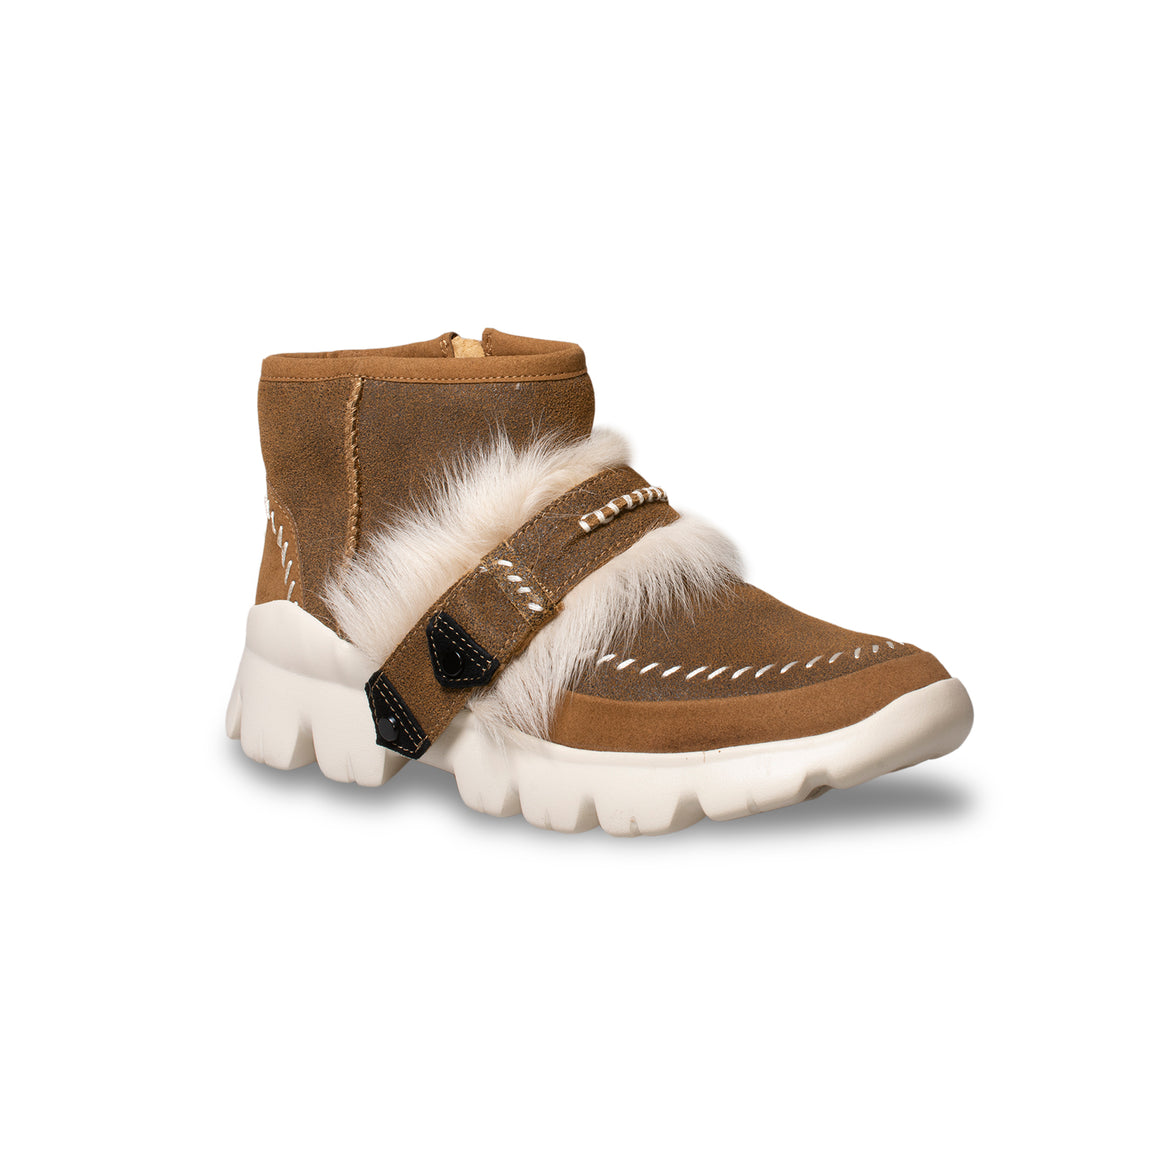 UGG Fluff Punk Ankle Chestnut Boots - Women's